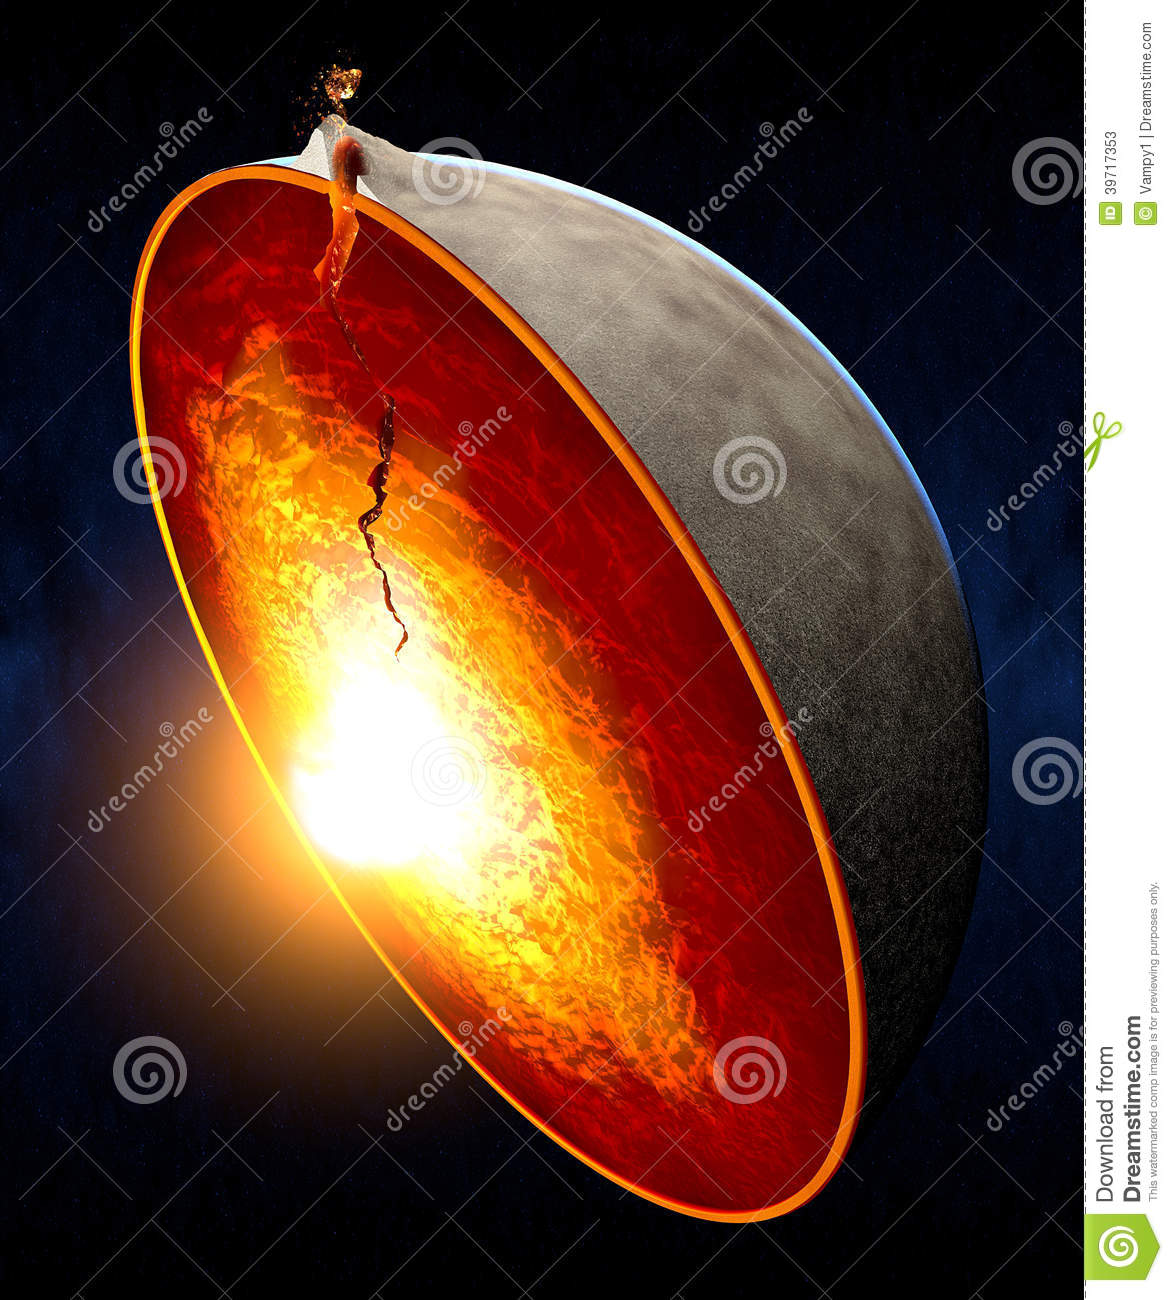 Erupting volcano and split the earth core stock illustration image